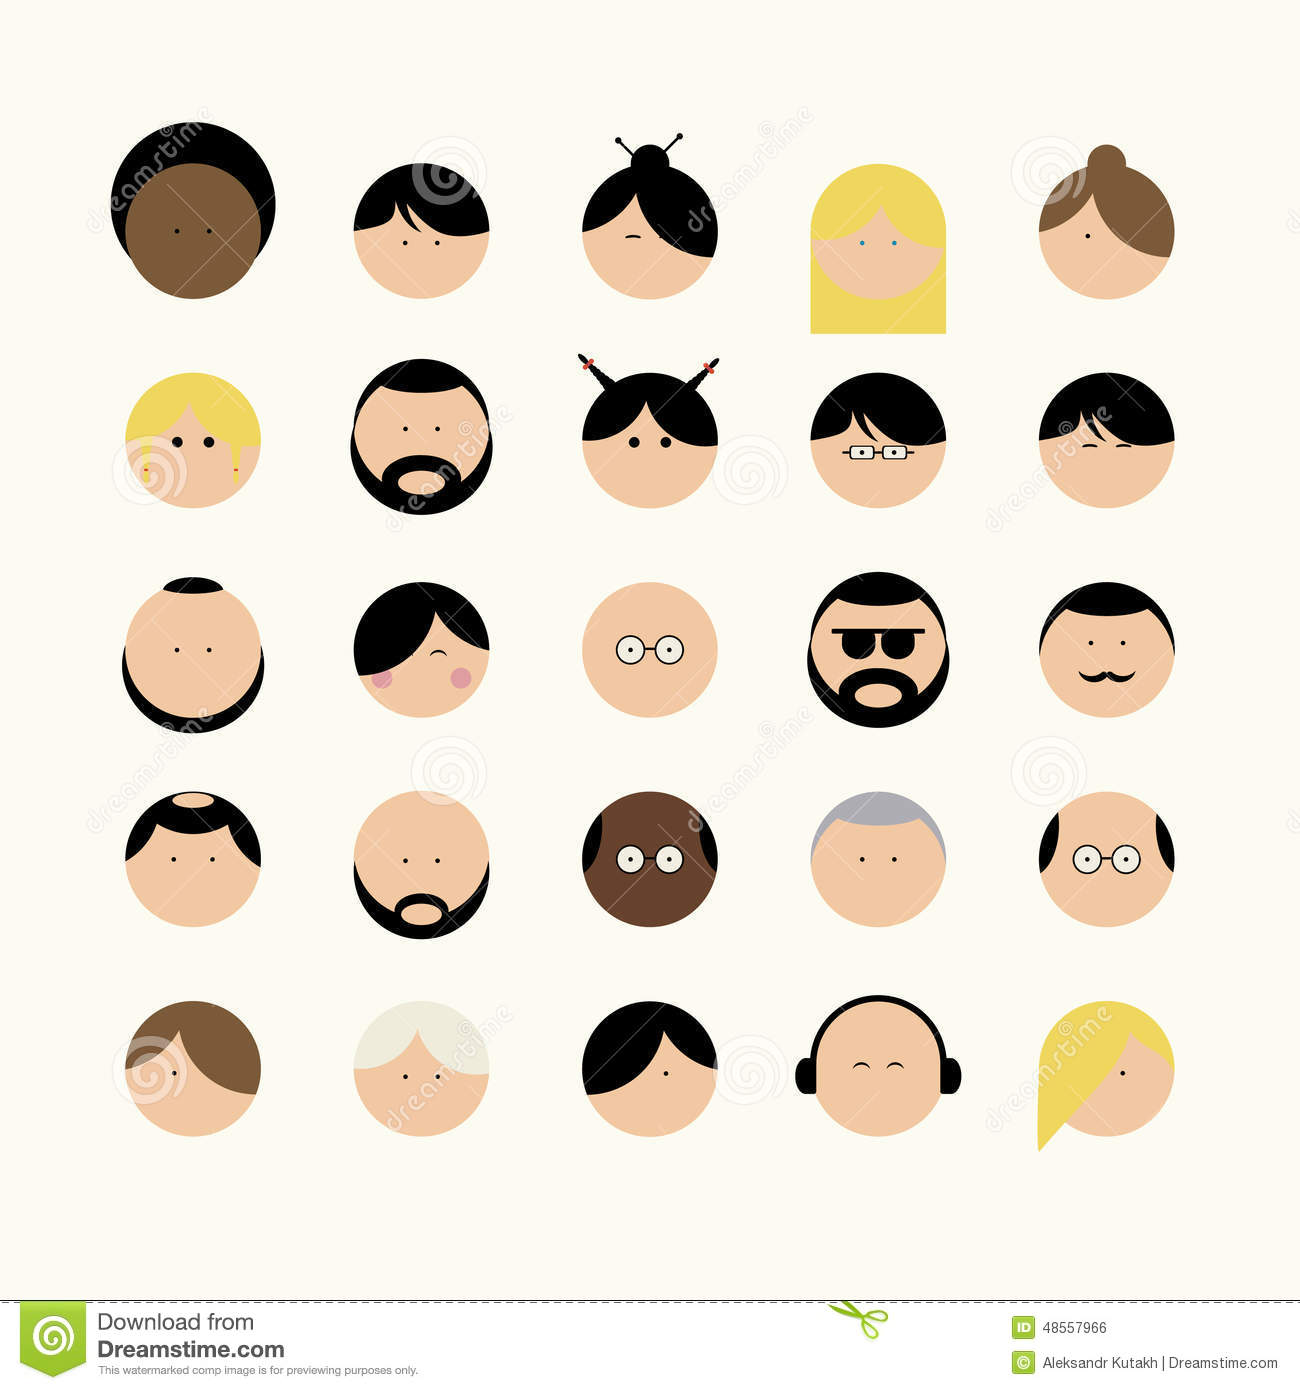 Icons faces different types of people.